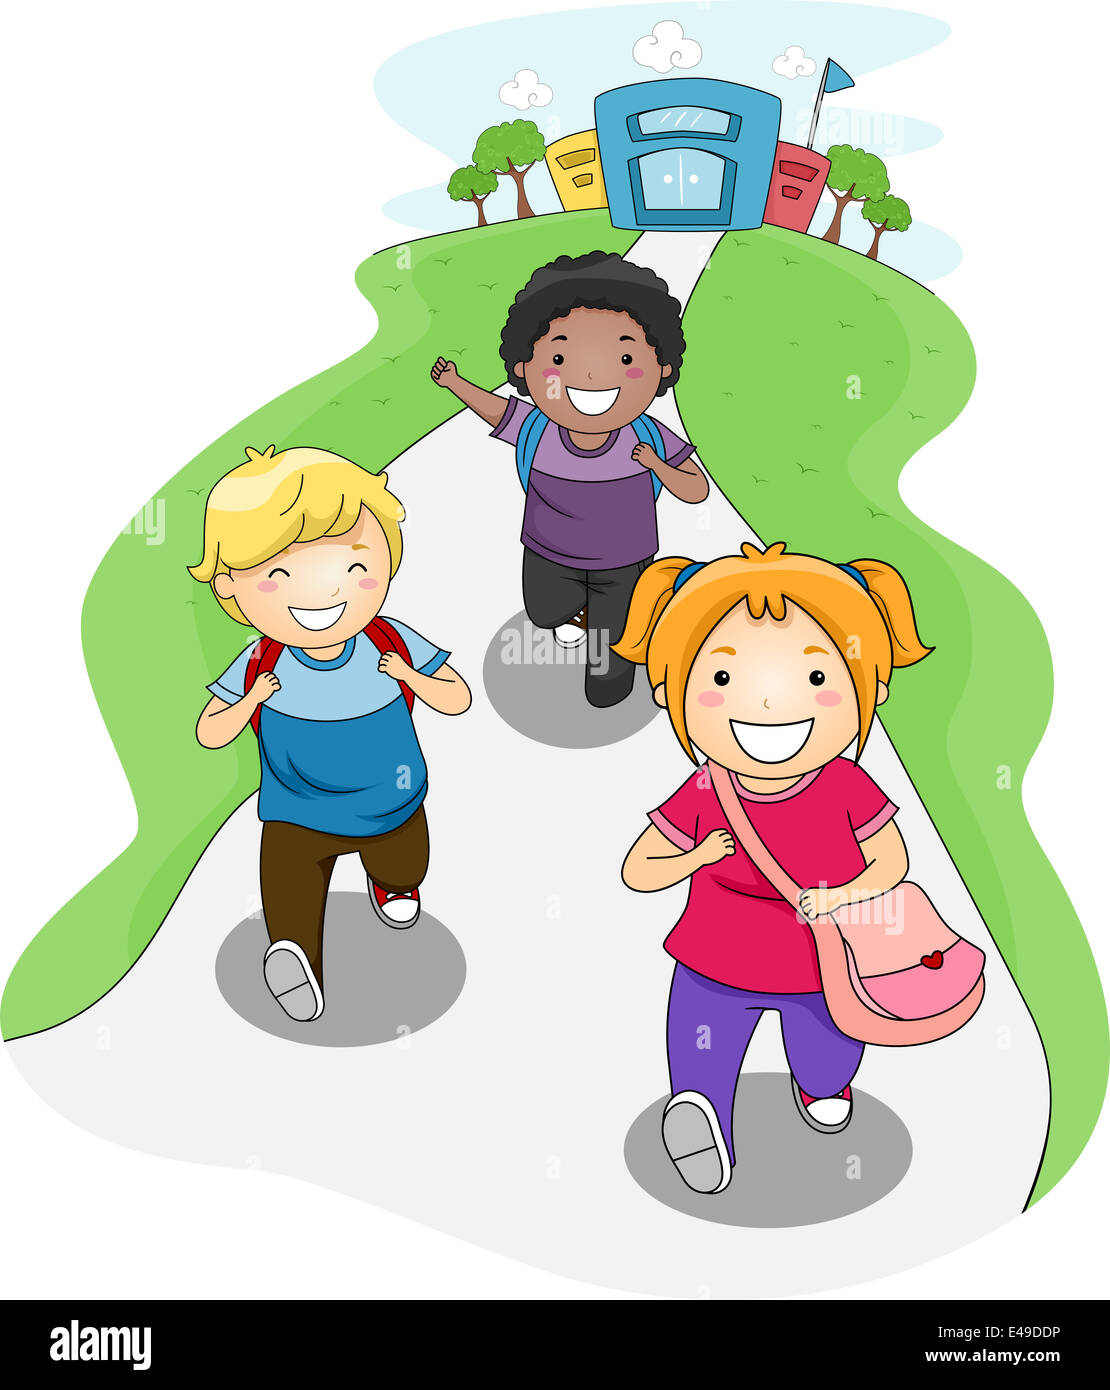 Illustration of Kids Going Home From School Stock Photo ...